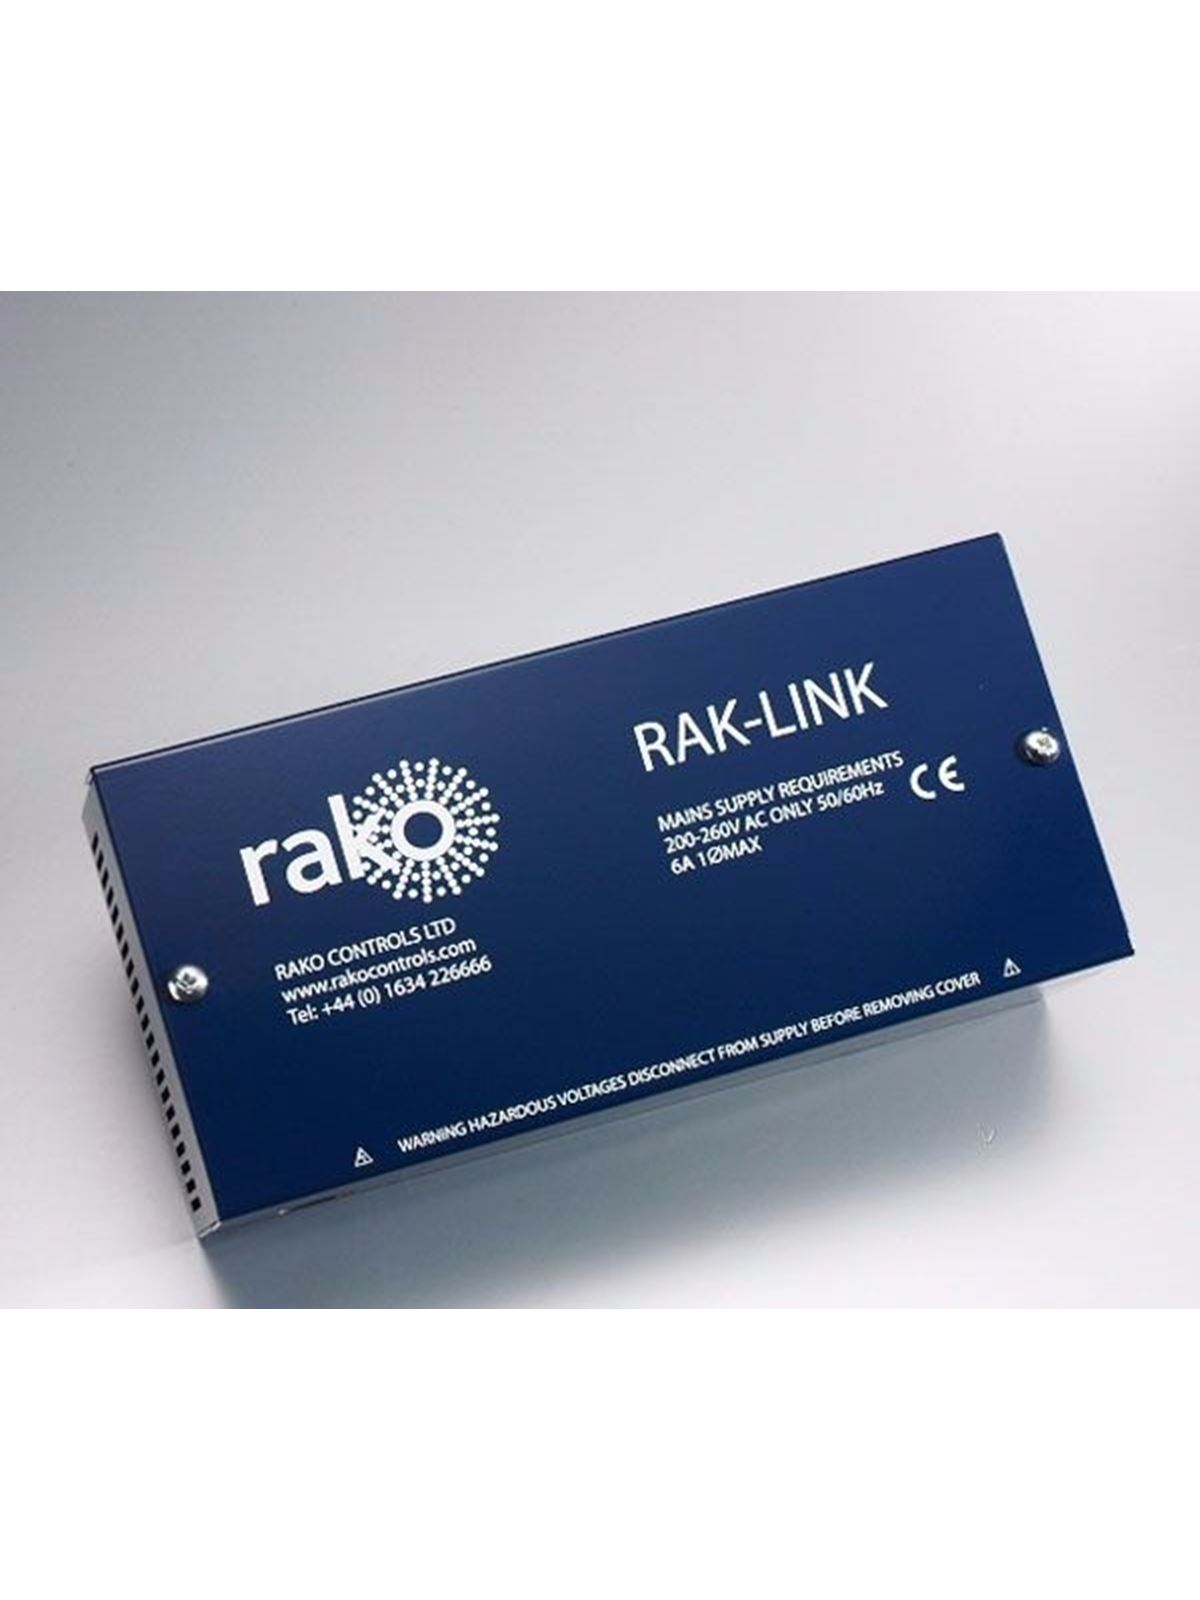 Rako Wired Connection unit for RAK 4 Dimmers RAK-LINK